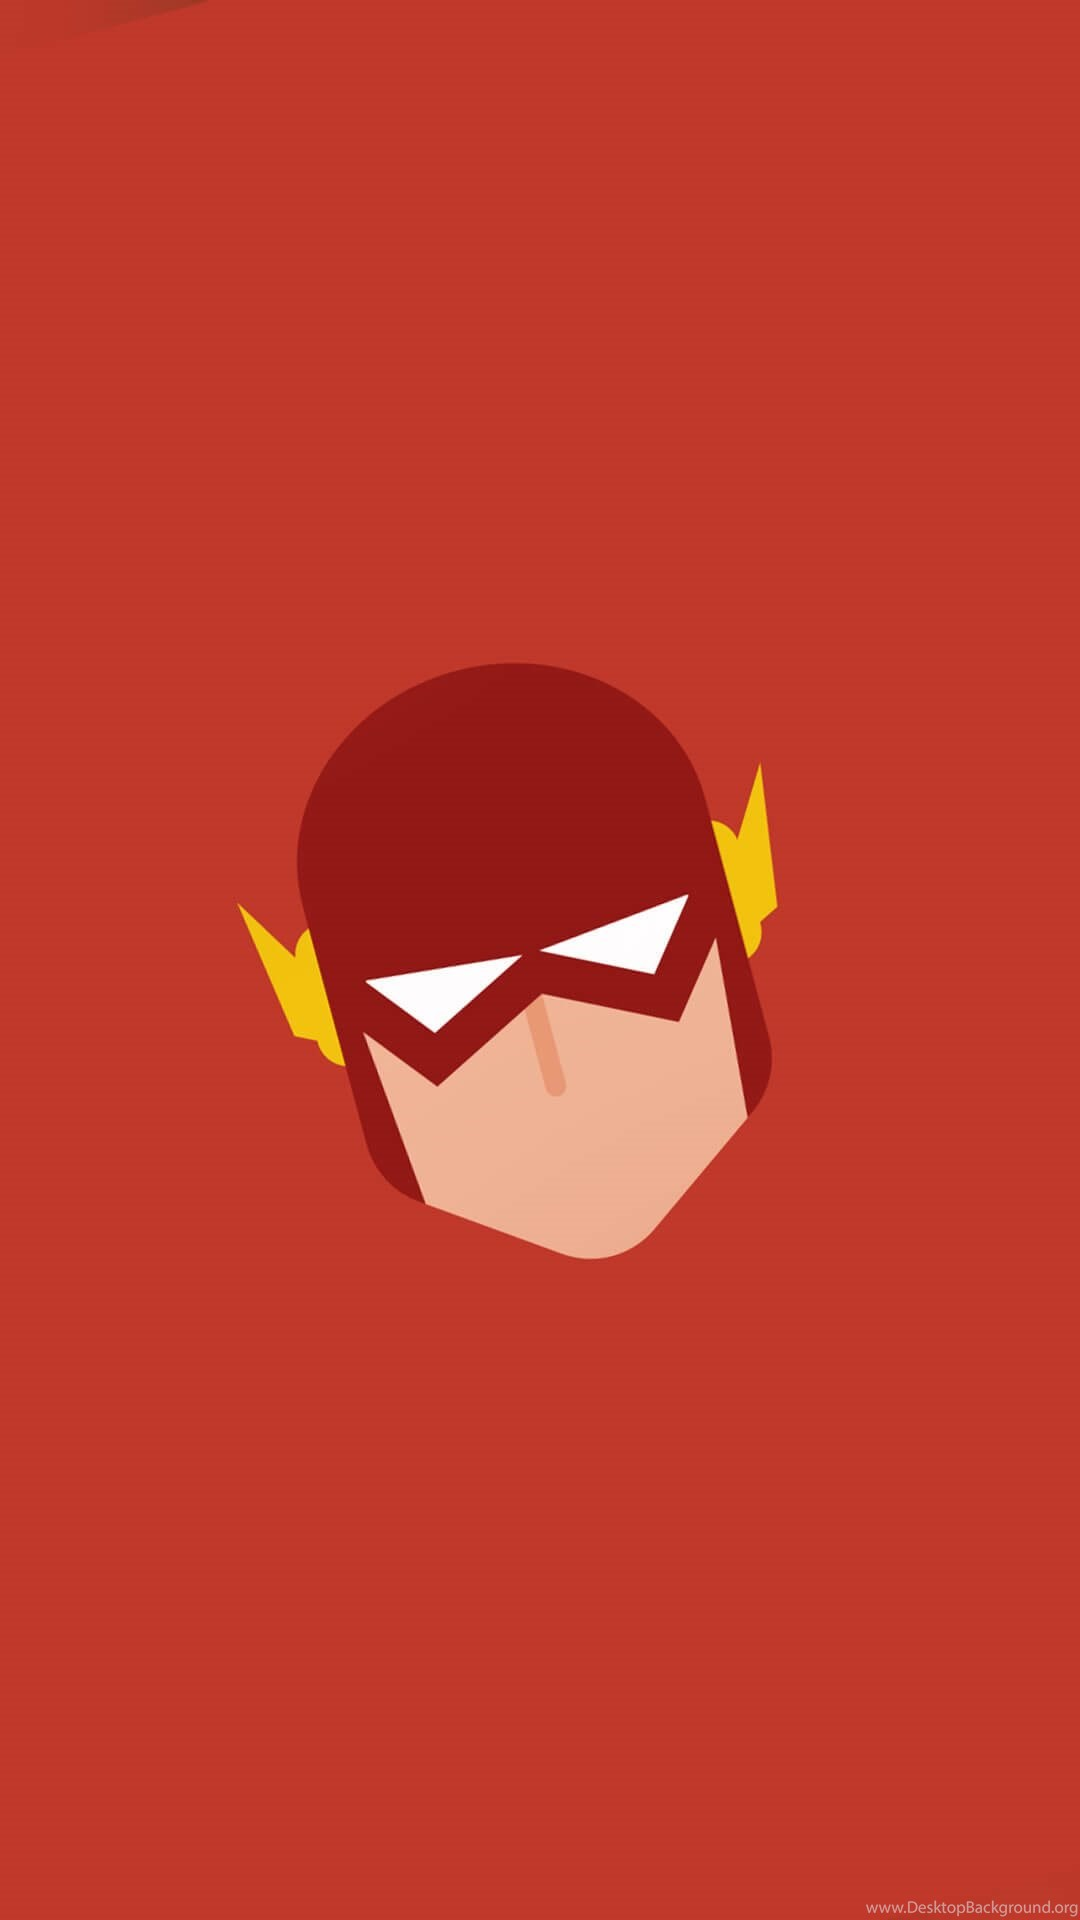 The Flash Wallpapers Iphone 6 Hd Wallpapers Iphone Desktop Background